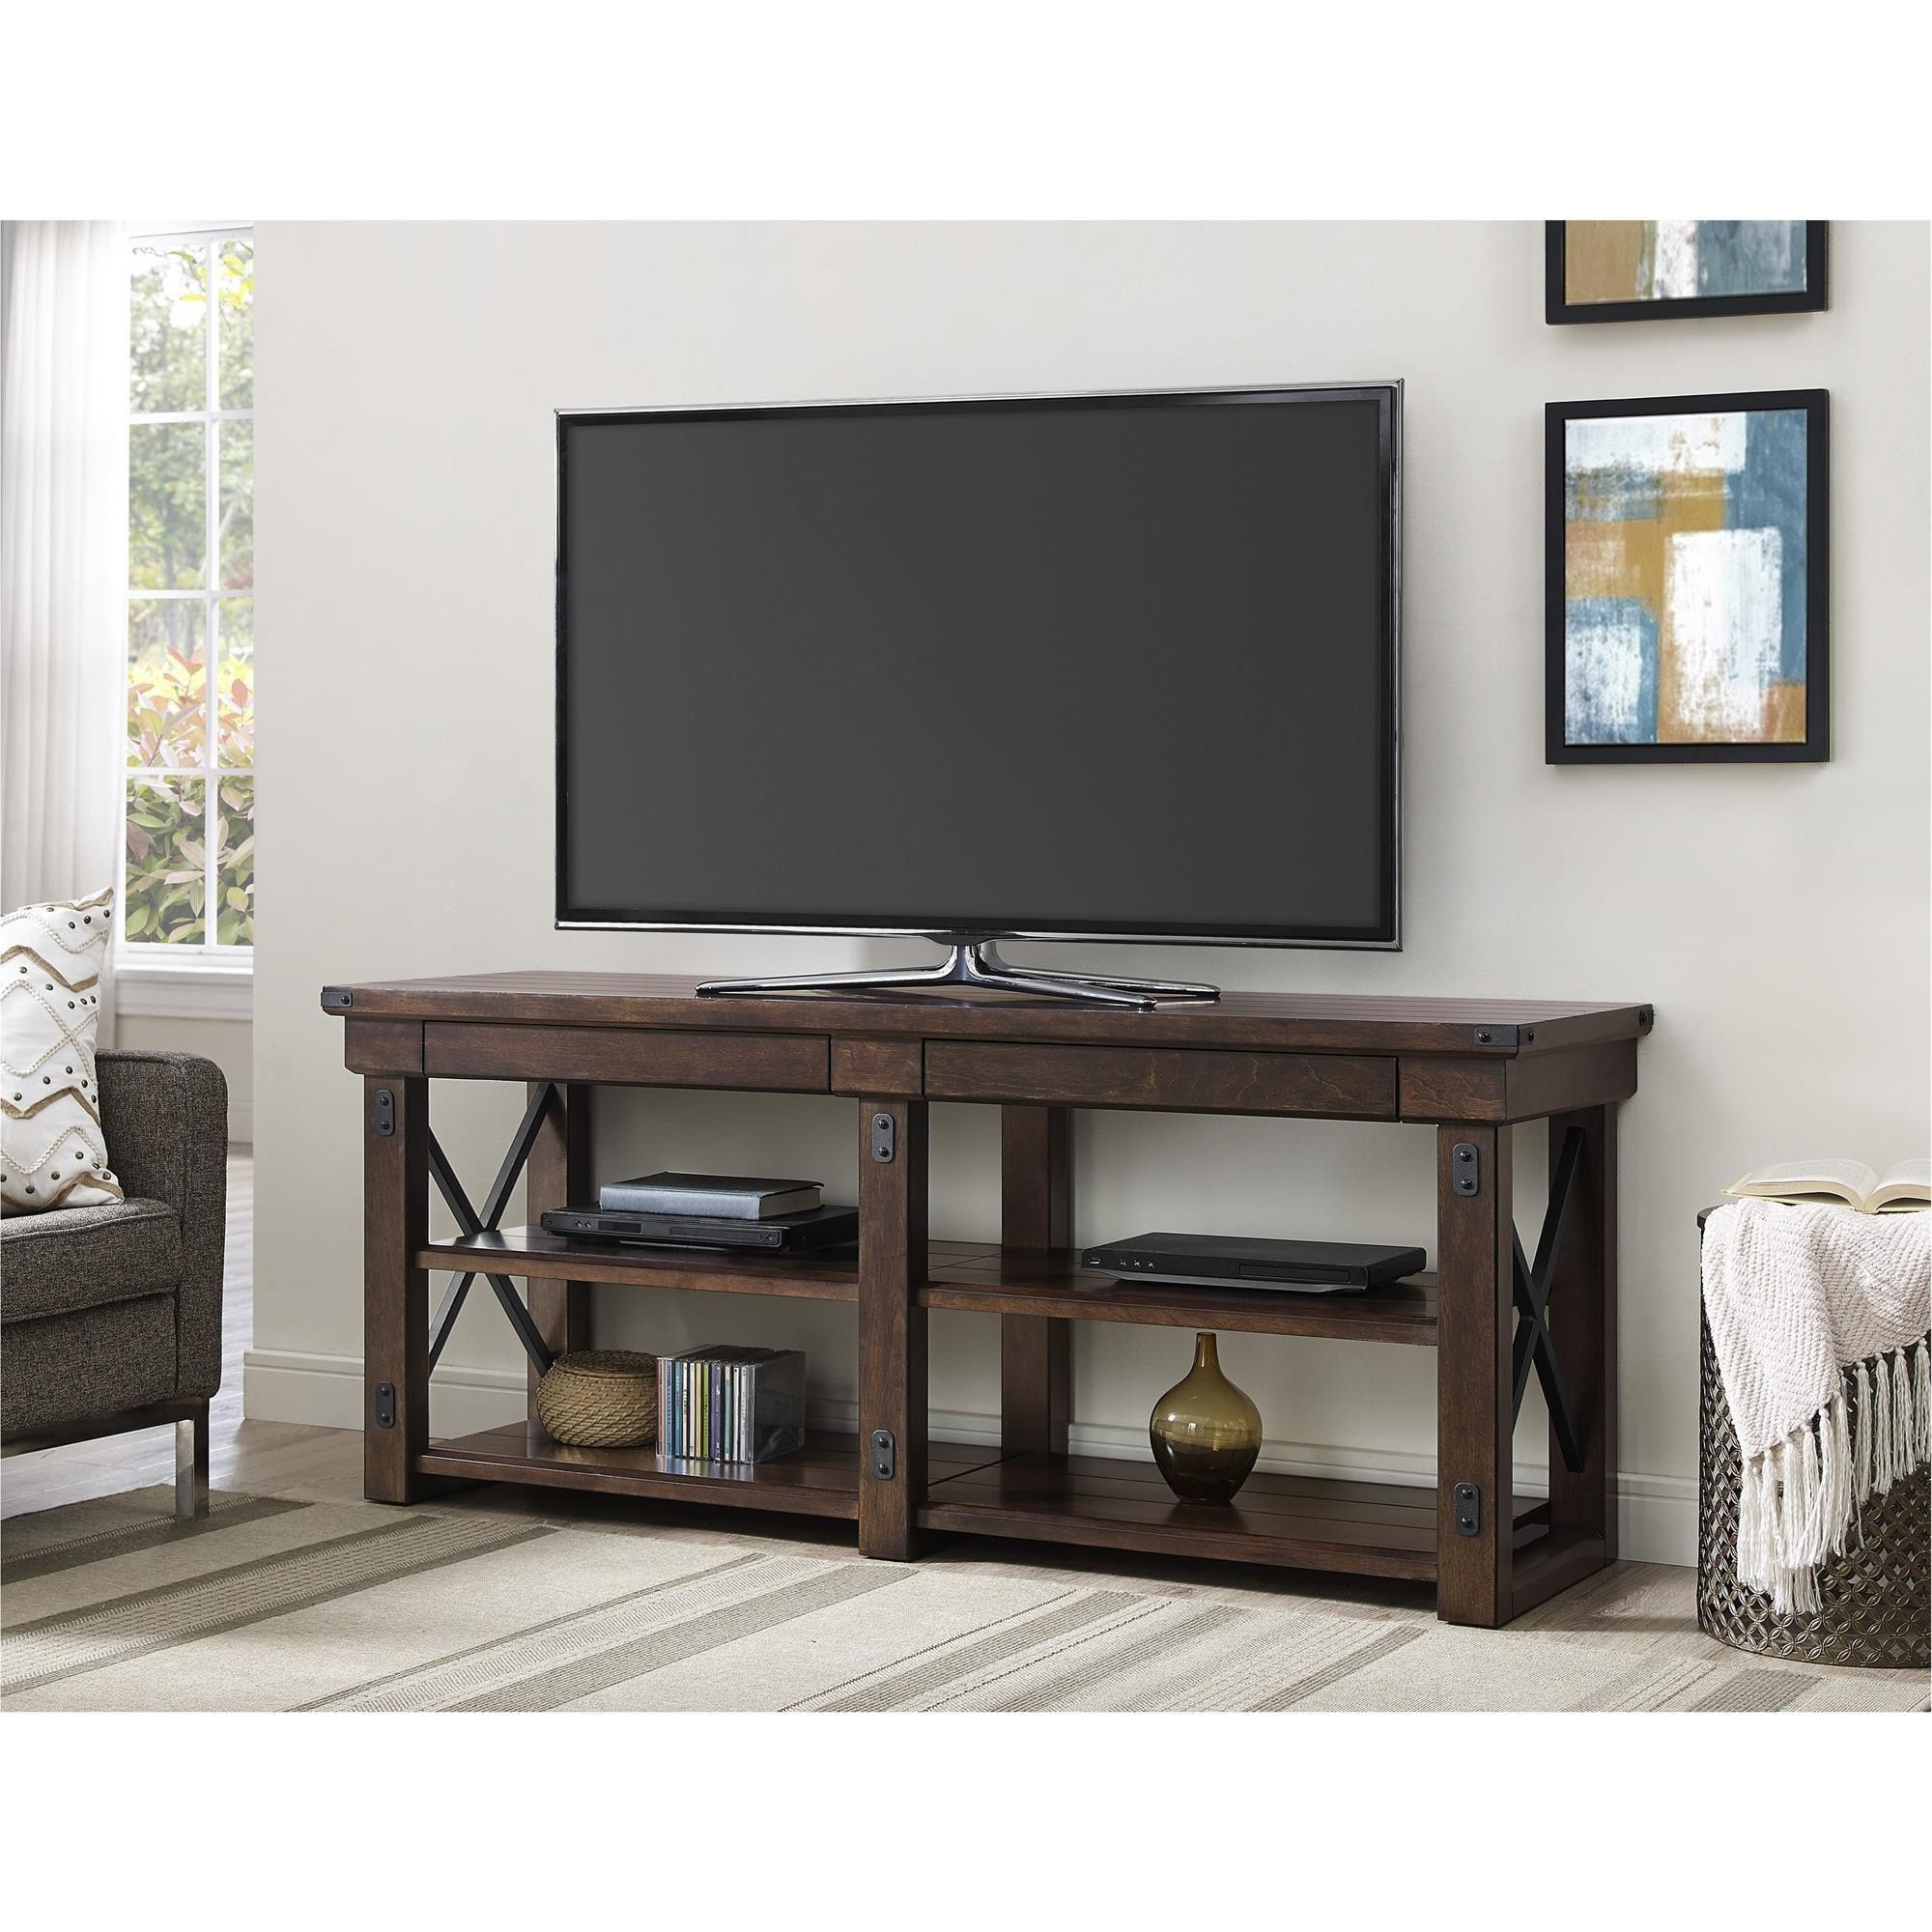 Ameriwood Home Wildwood Mahogany Veneer 65 Inch Tv Stand (65 Inch Tv Intended For Oxford 60 Inch Tv Stands (Gallery 8 of 20)